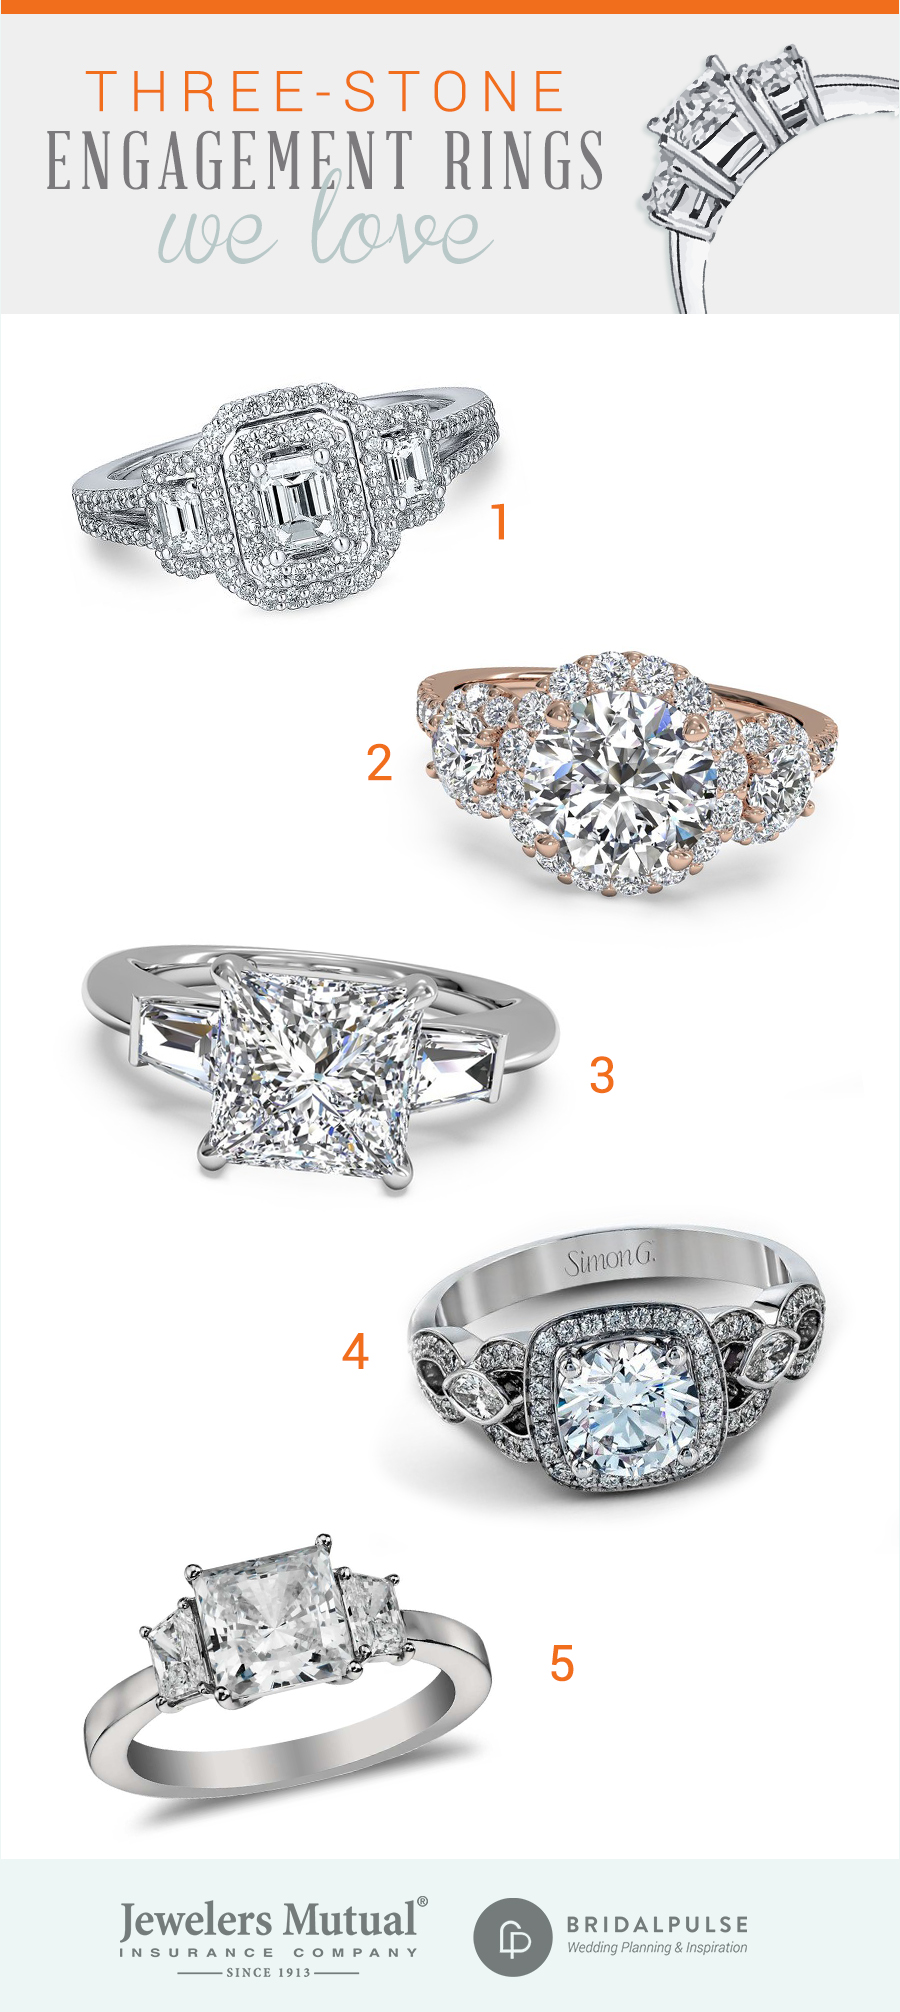 5 three stone engagement rings i love and why you should for Jewelers mutual personal jewelry insurance